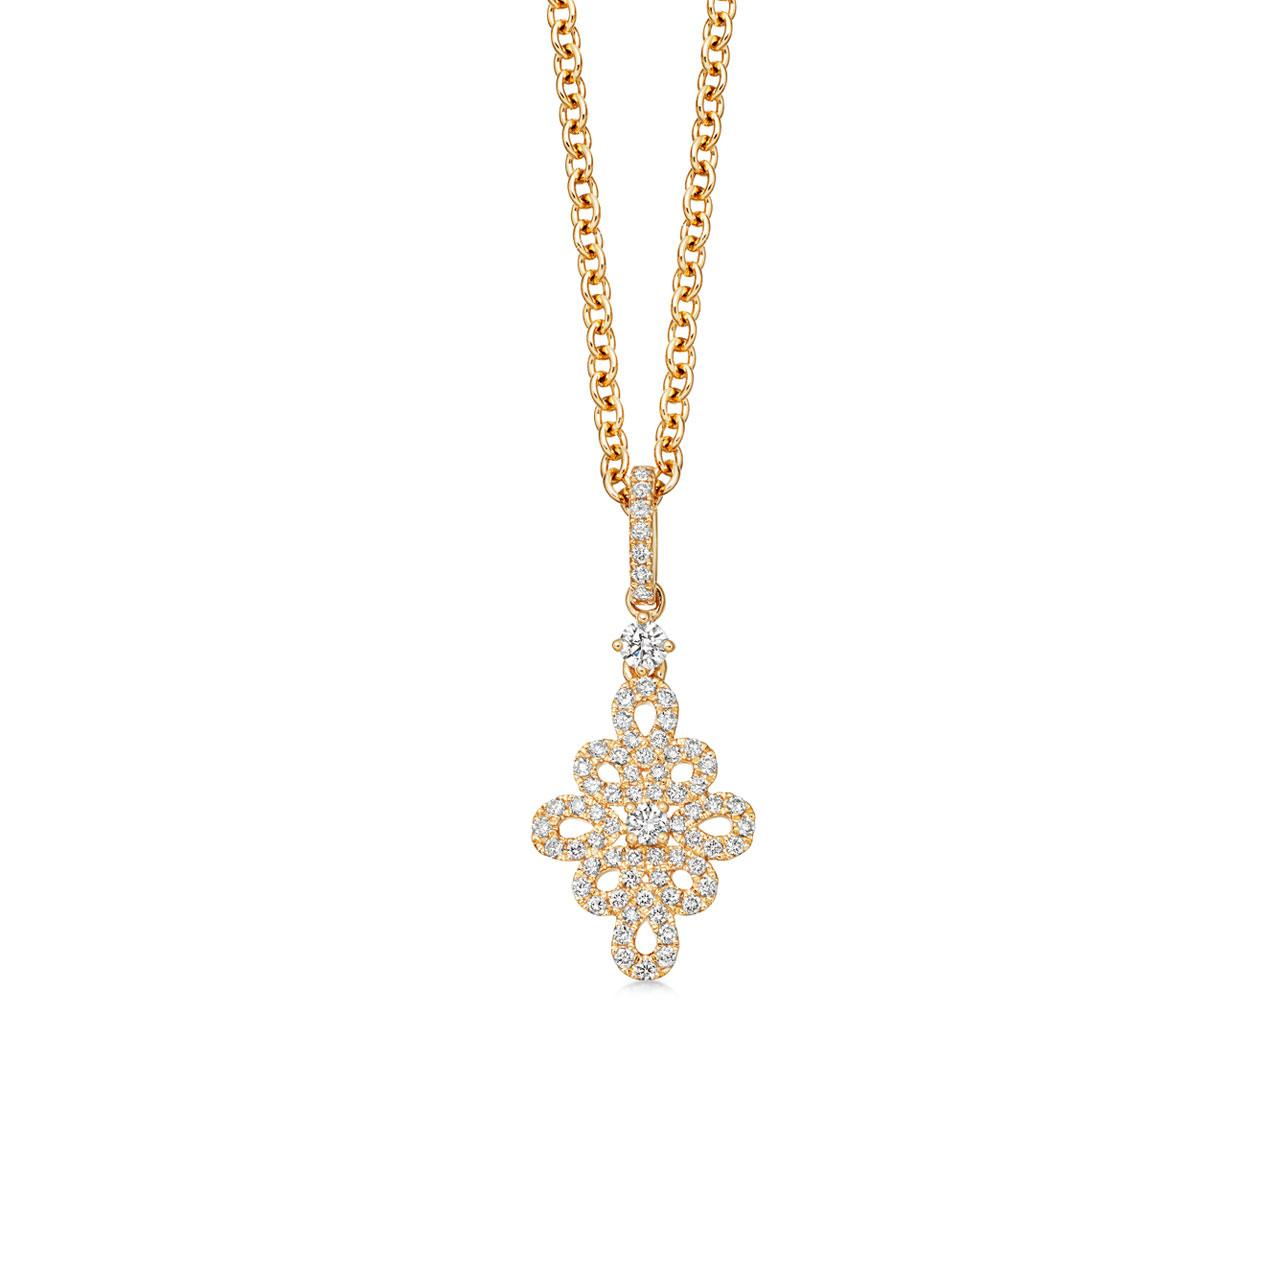 Lace Pave Diamond Pendant In Yellow Gold Pertaining To Recent Diamond Necklaces In Yellow Gold (View 16 of 25)